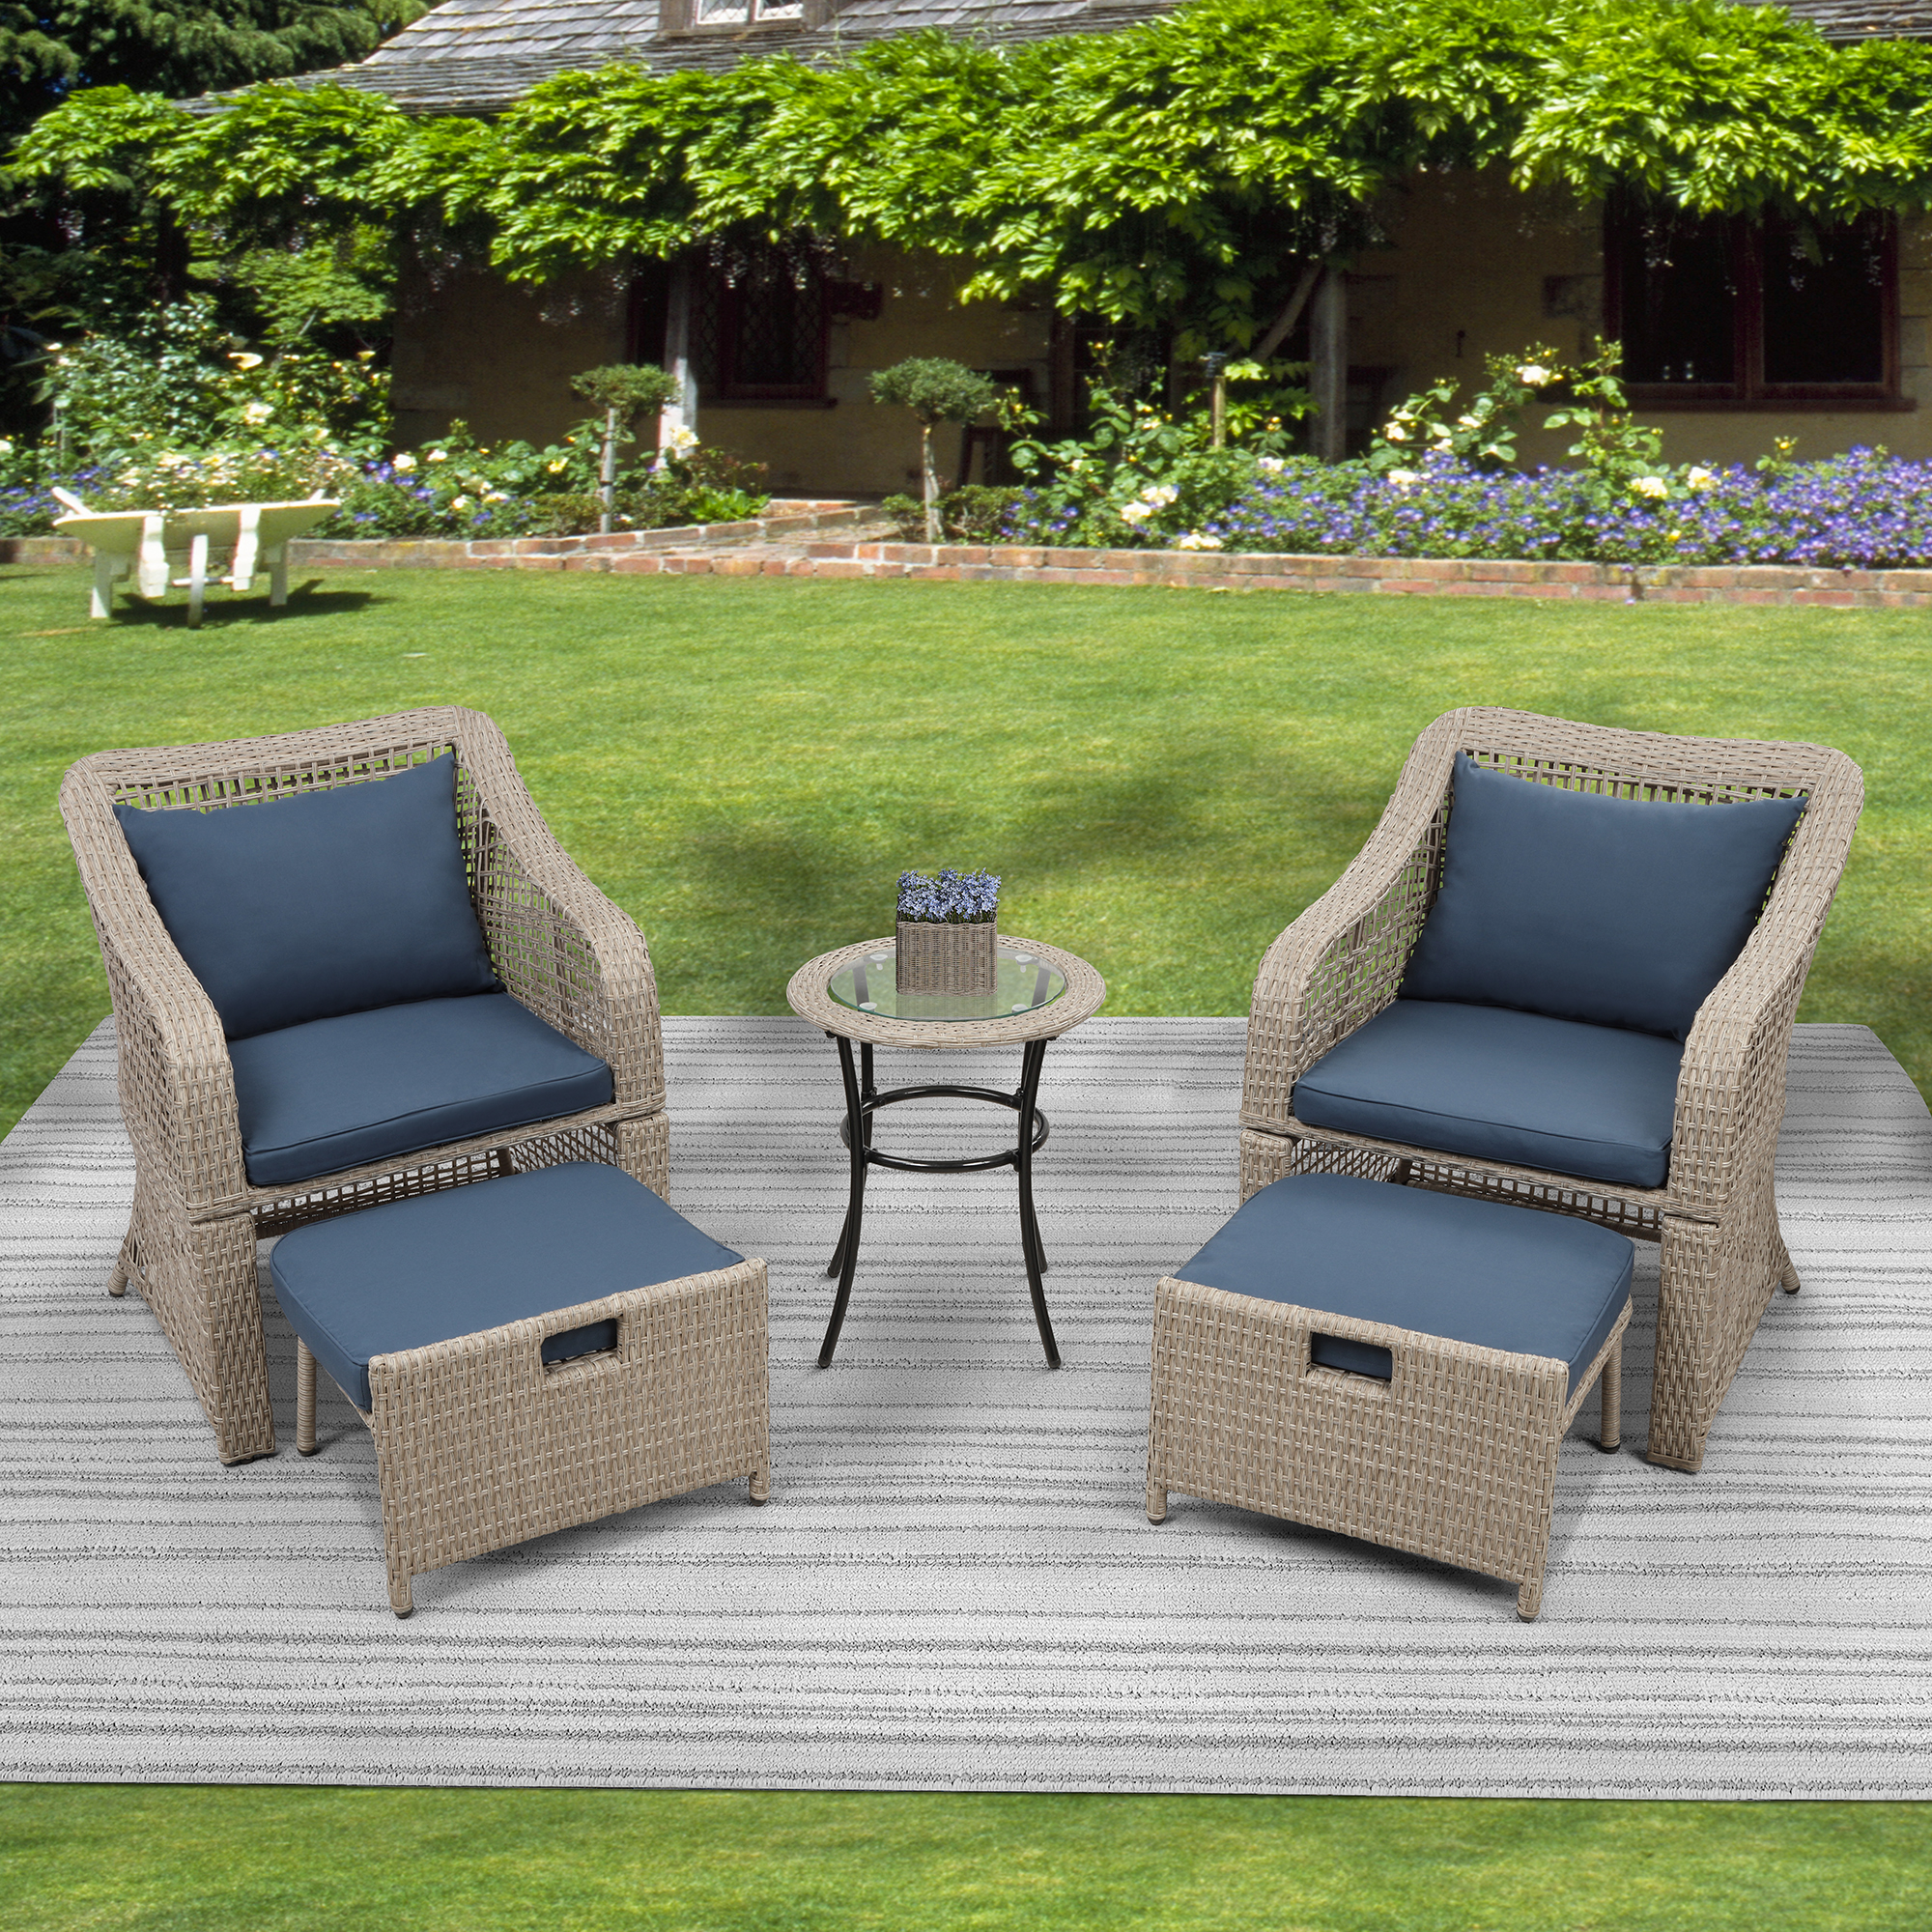 uhomepro 5 piece wicker patio furniture set pe wicker rattan small patio set porch furniture cushioned patio chair set of 2 with ottomans coffee